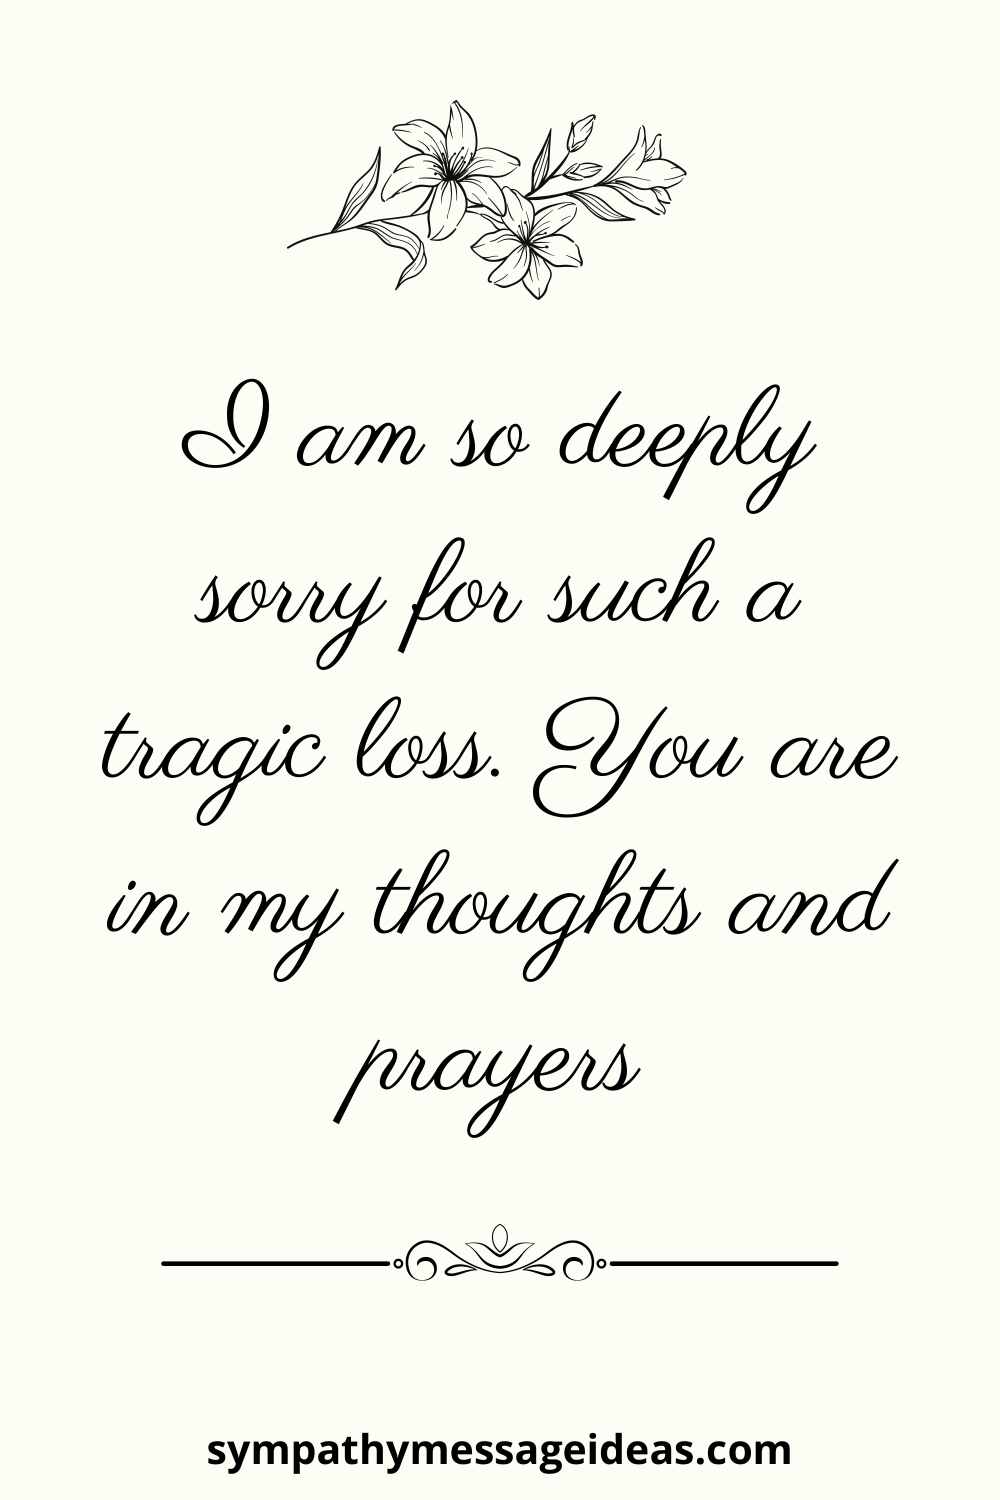 condolence text message for a loved one